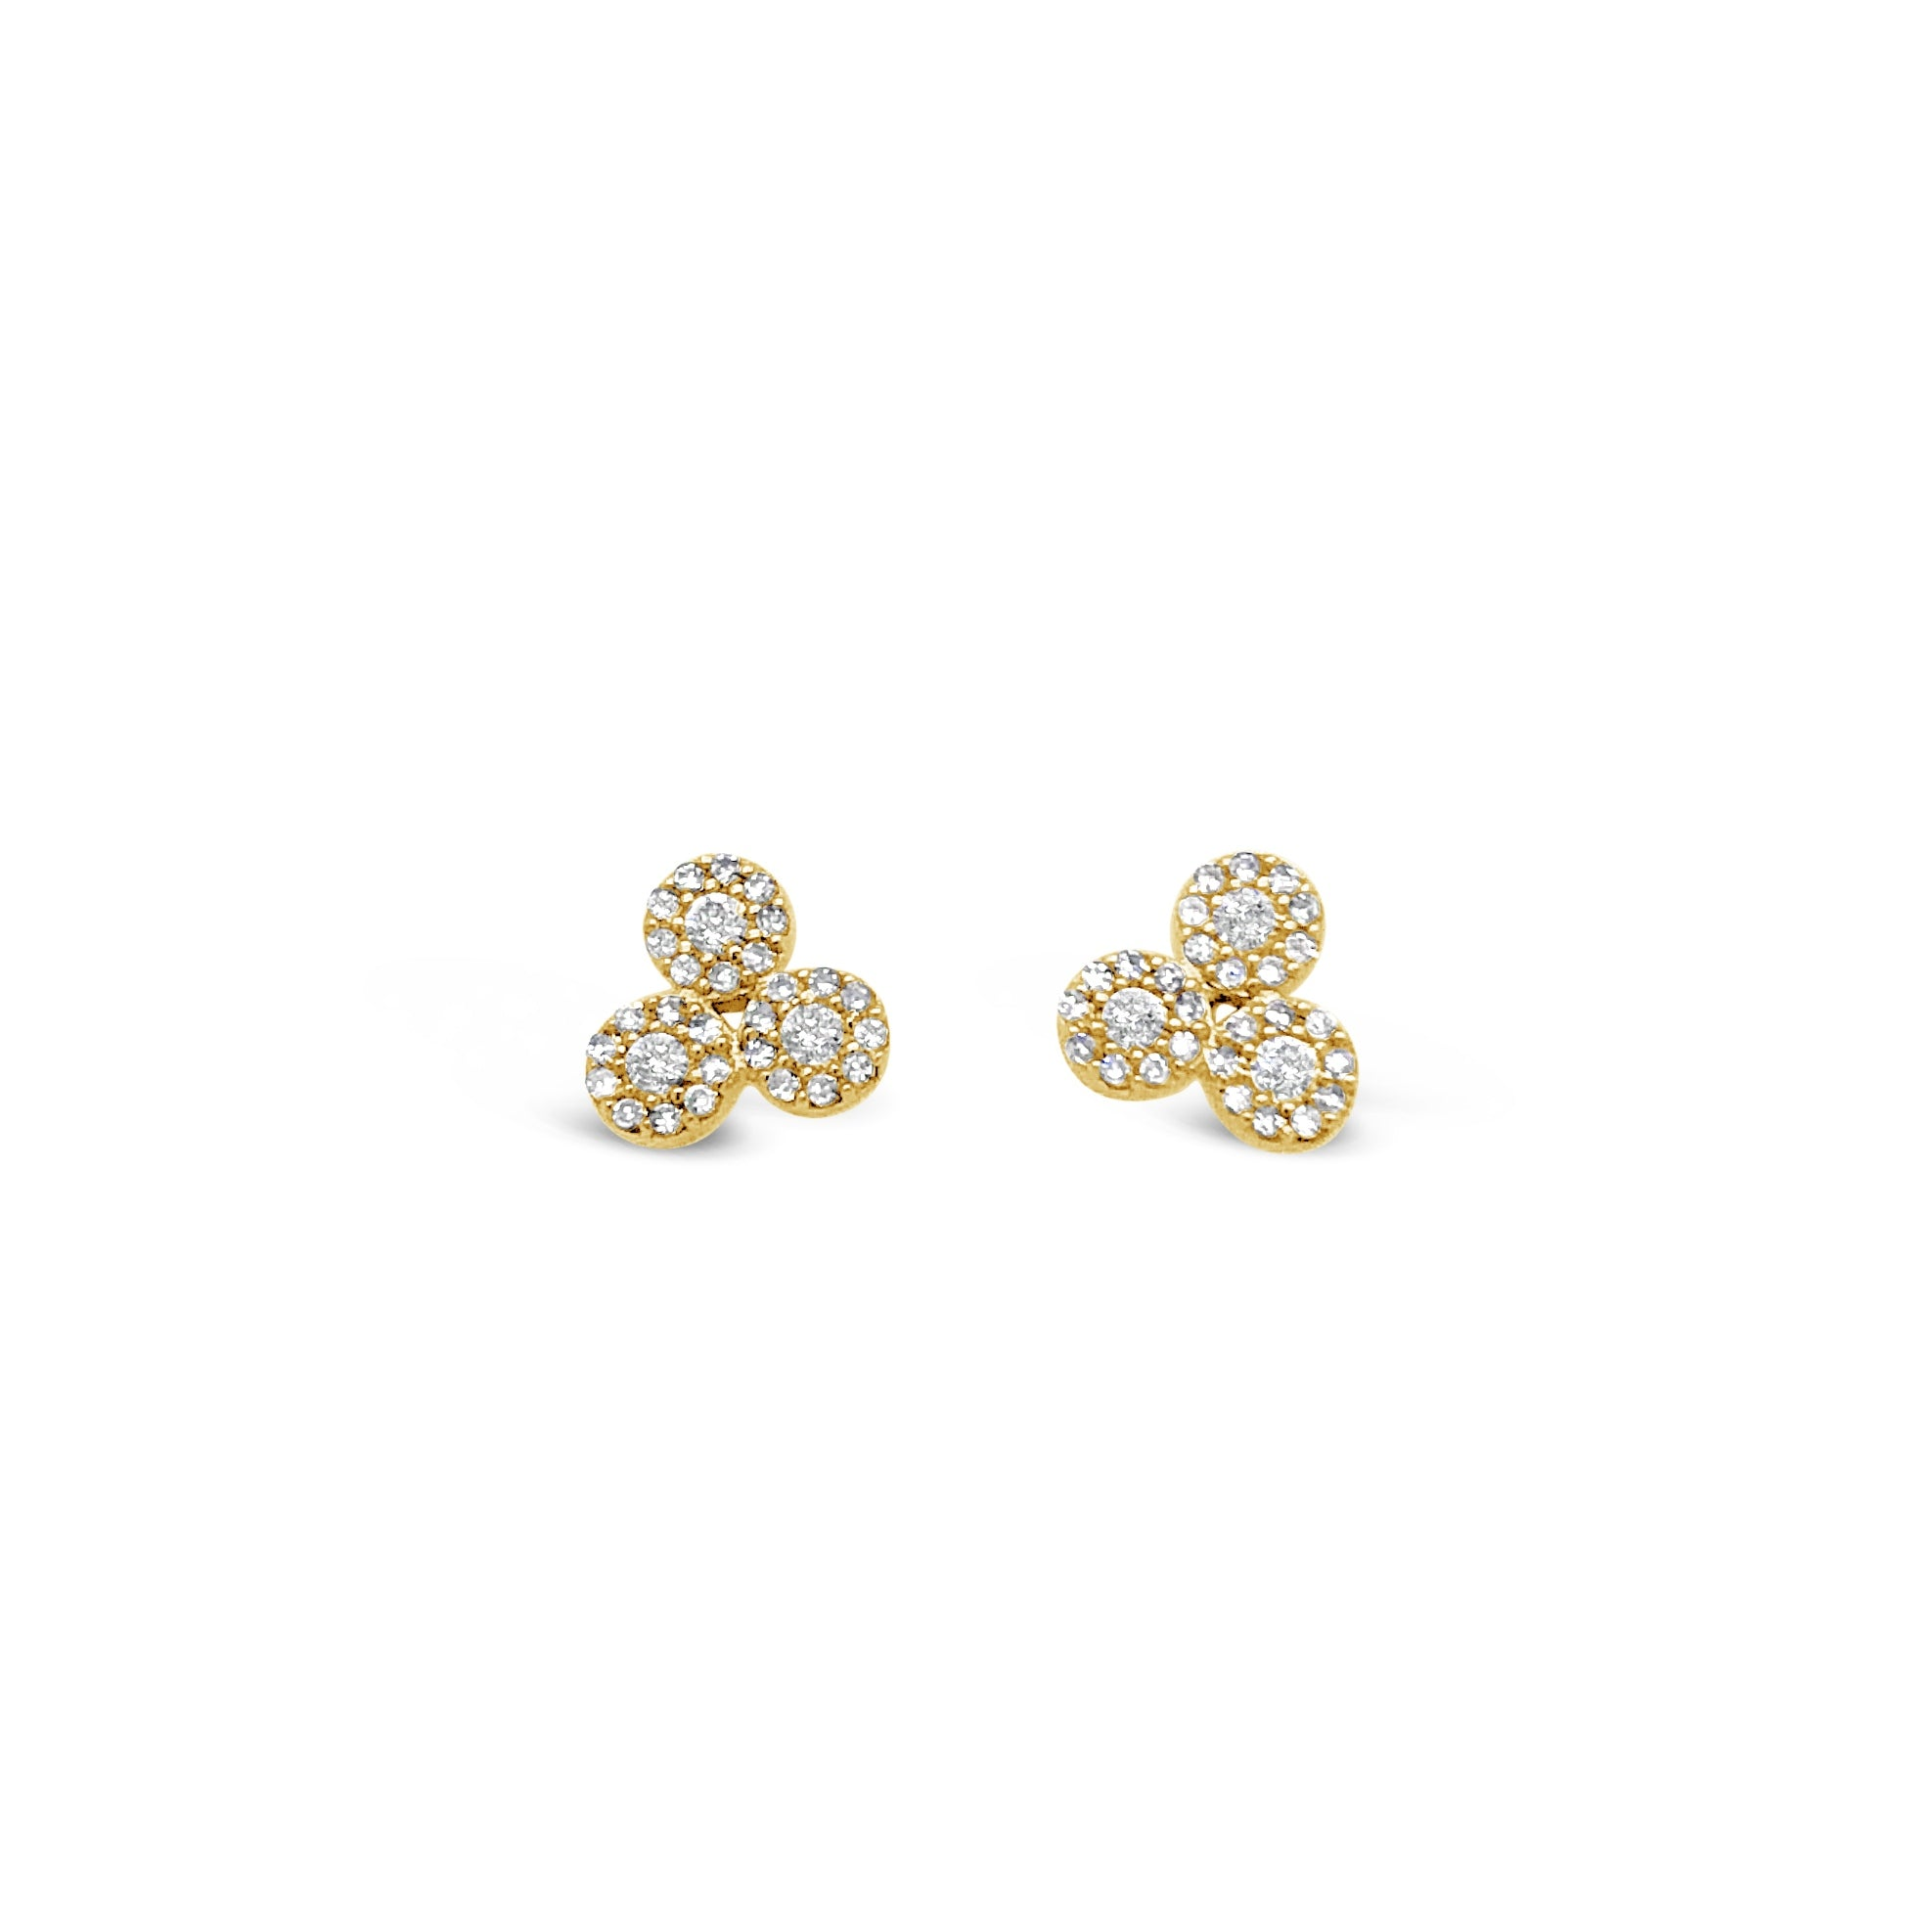 Triple Bezel Diamond Stud Earrings